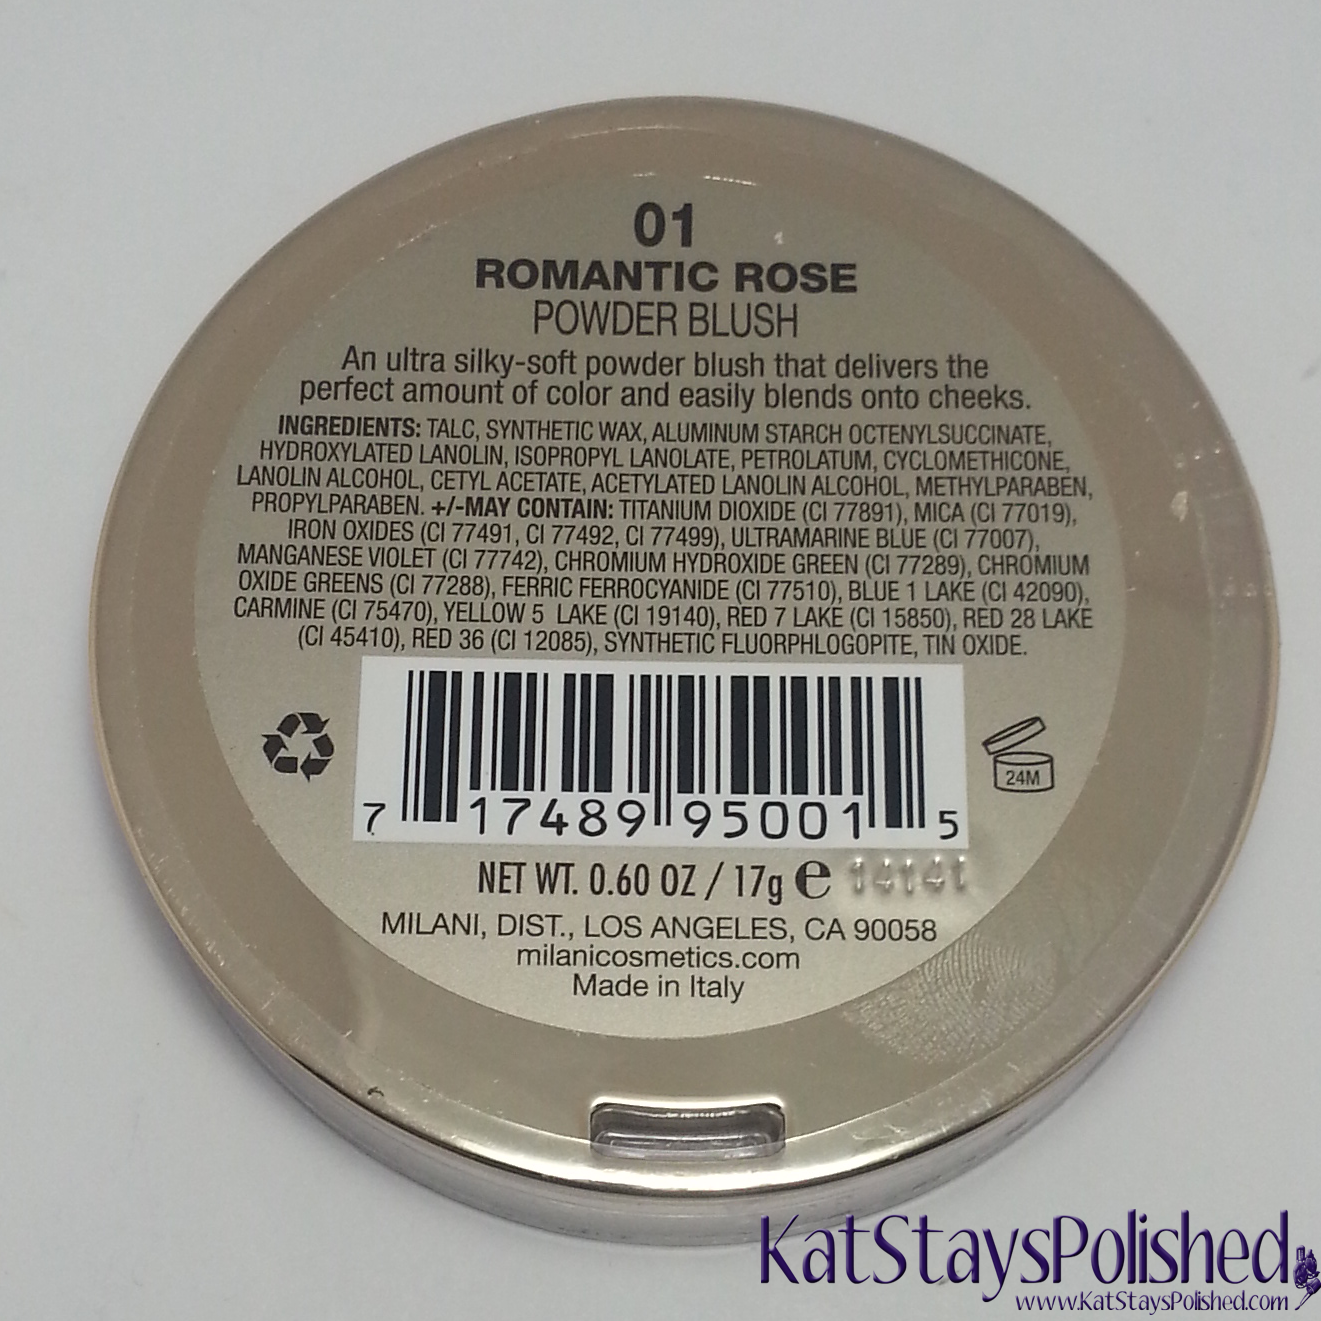 Milani Rose Powder Blush - Romantic Rose | Kat Stays Polished